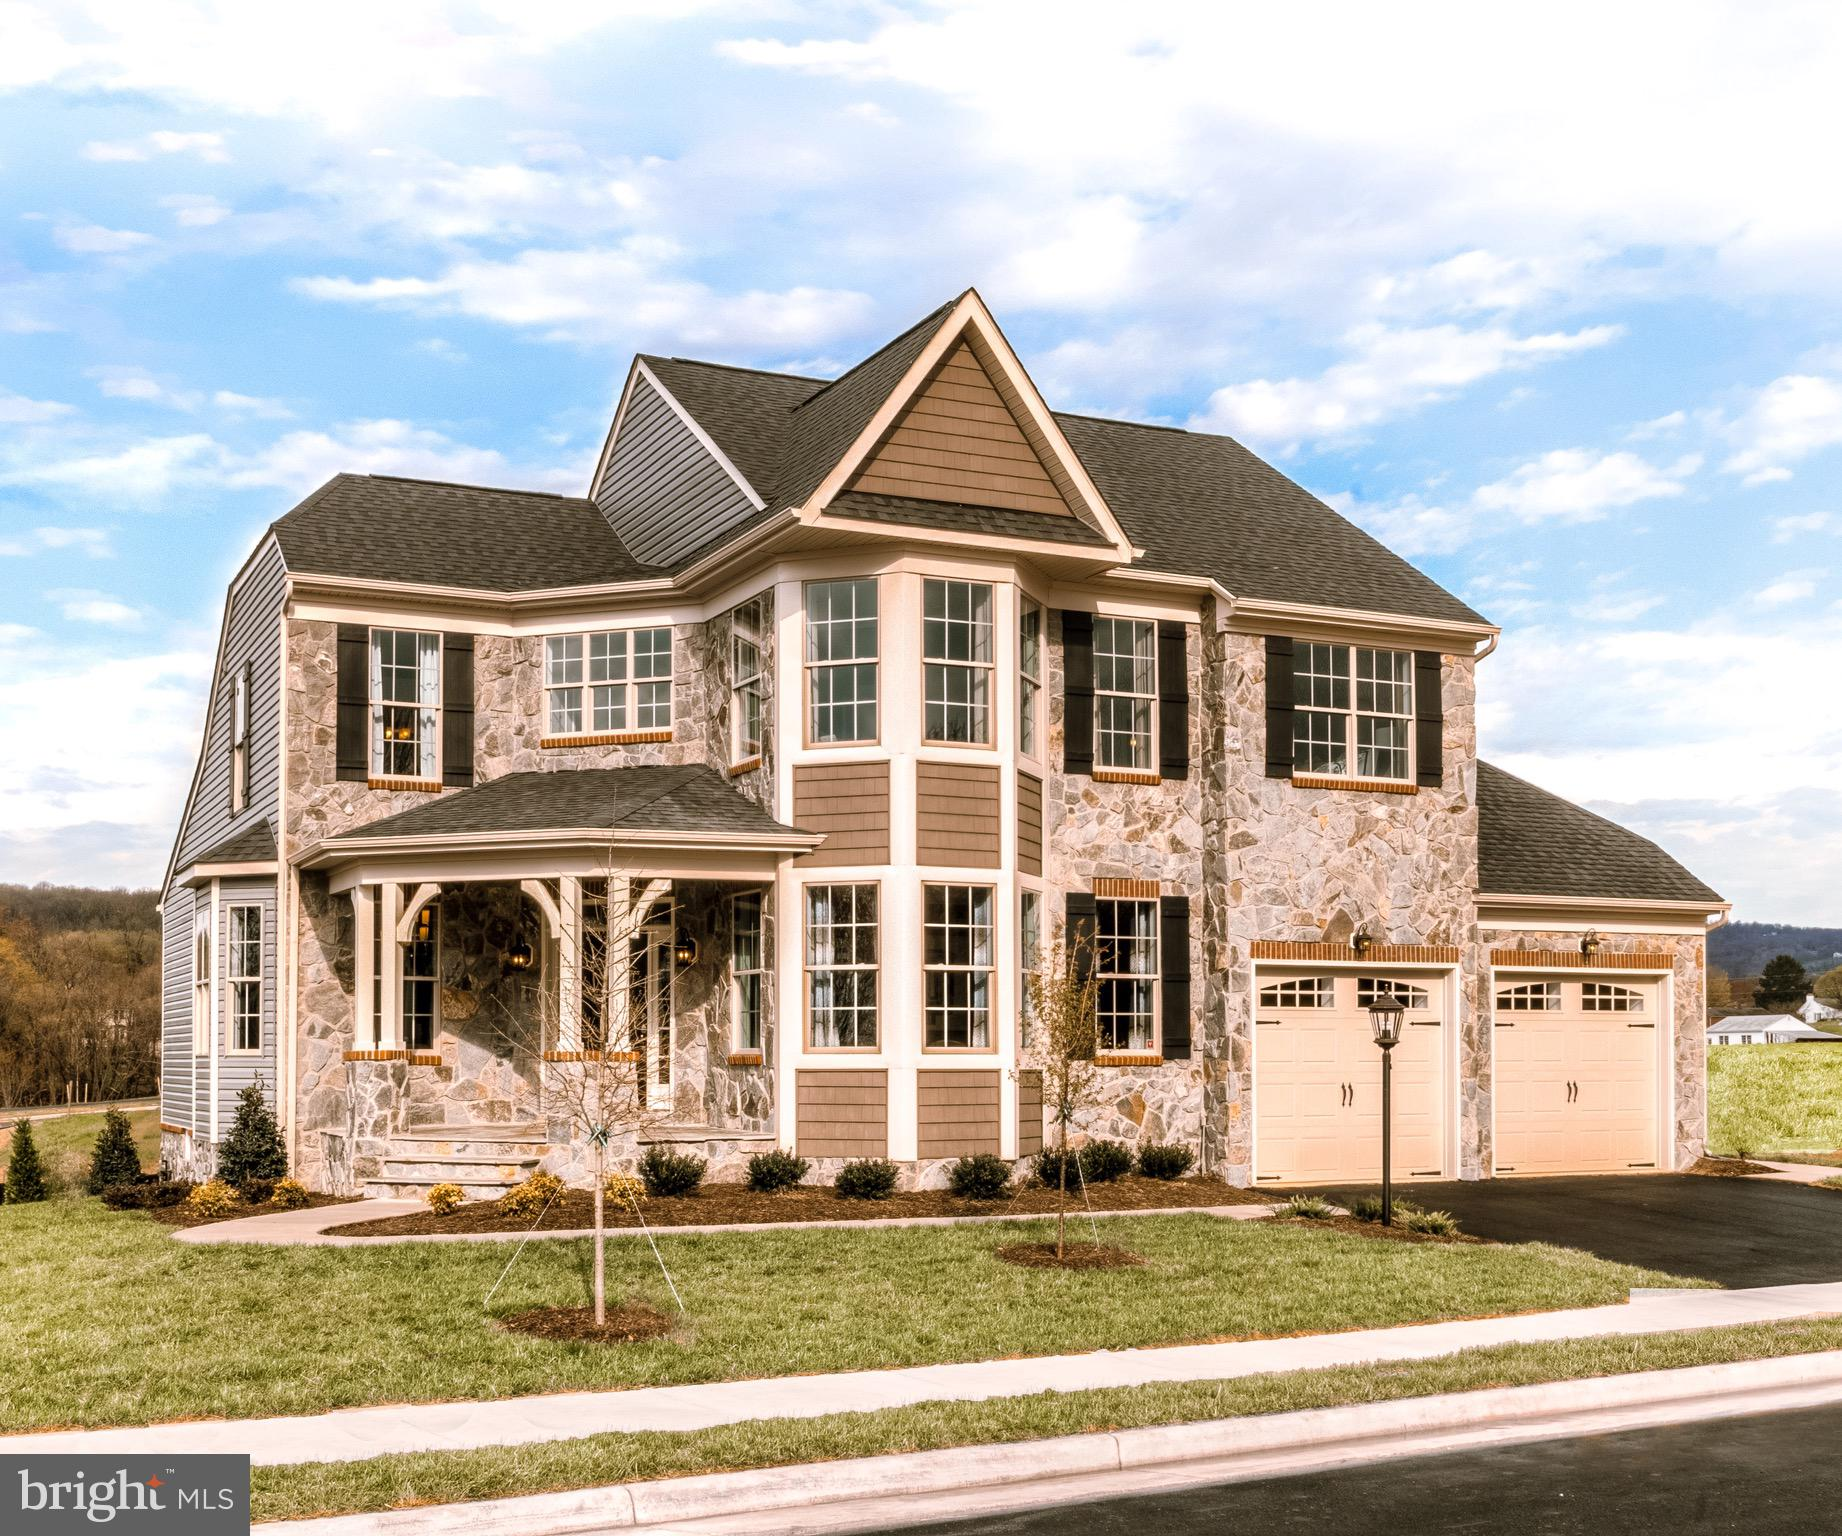 17289 CREEKSIDE GREEN PLACE, ROUND HILL, VA 20141